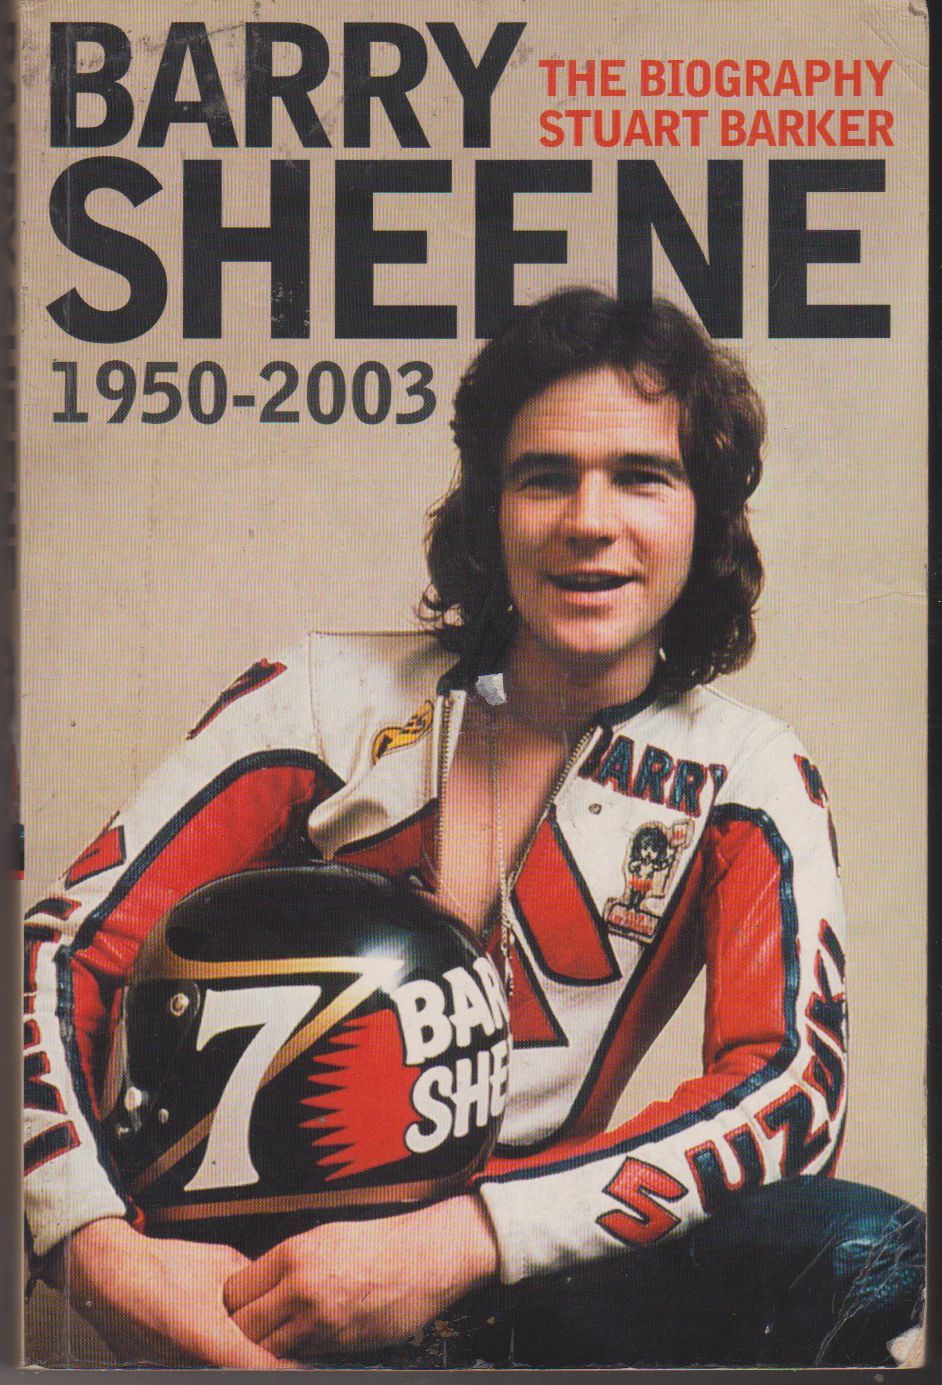 Barry Sheene : 1950-2003 : the biography / Stuart Barker.